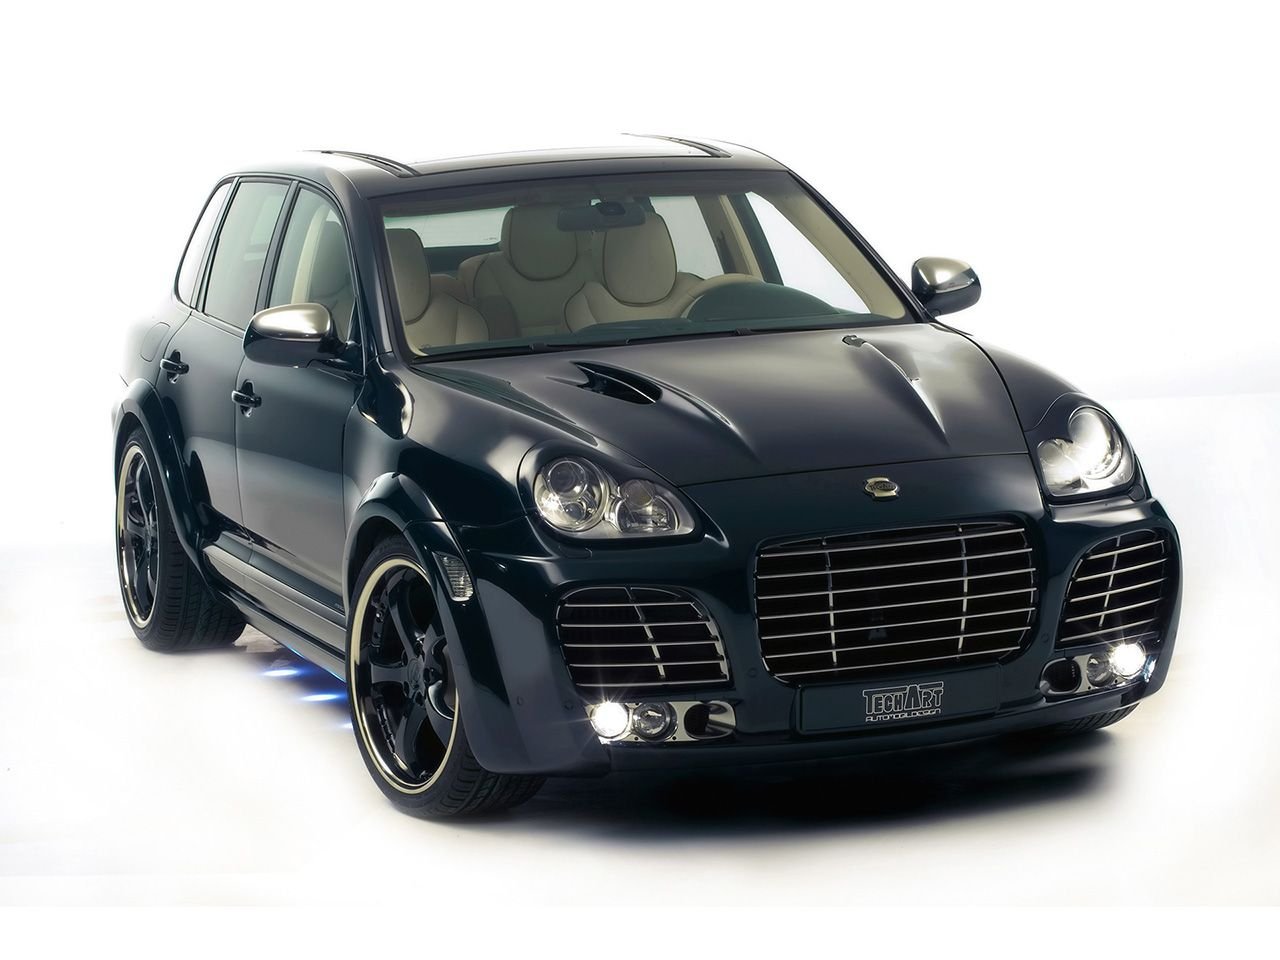 TECHART Magnum based on Porsche Cayenne Turbo  Front HD